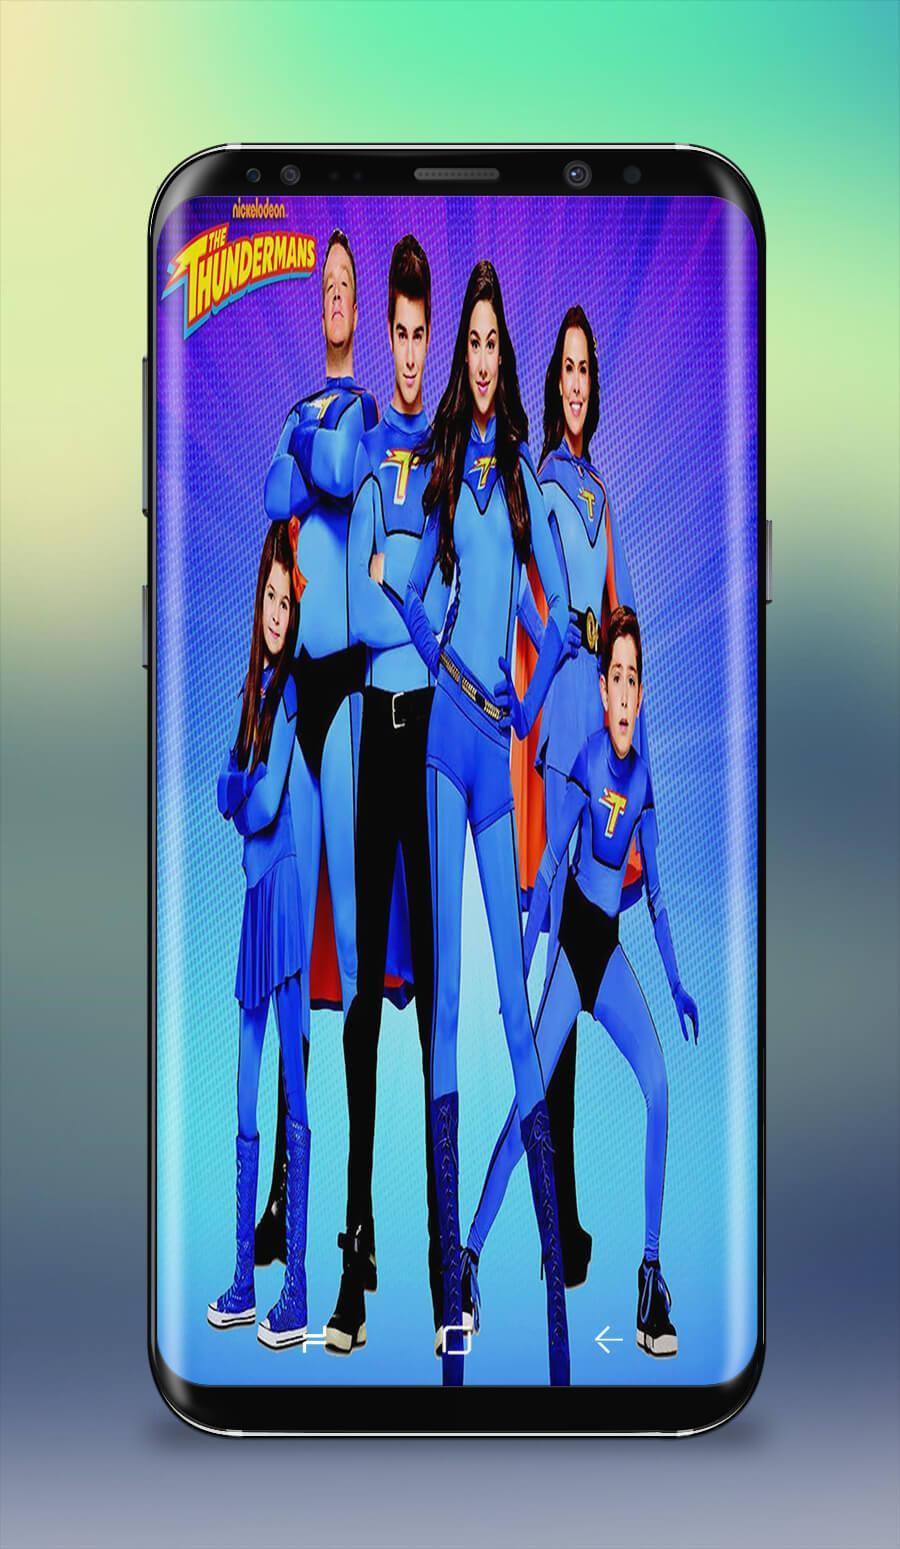 Heros Thundermans Wallpaper for Android   APK Download 900x1549